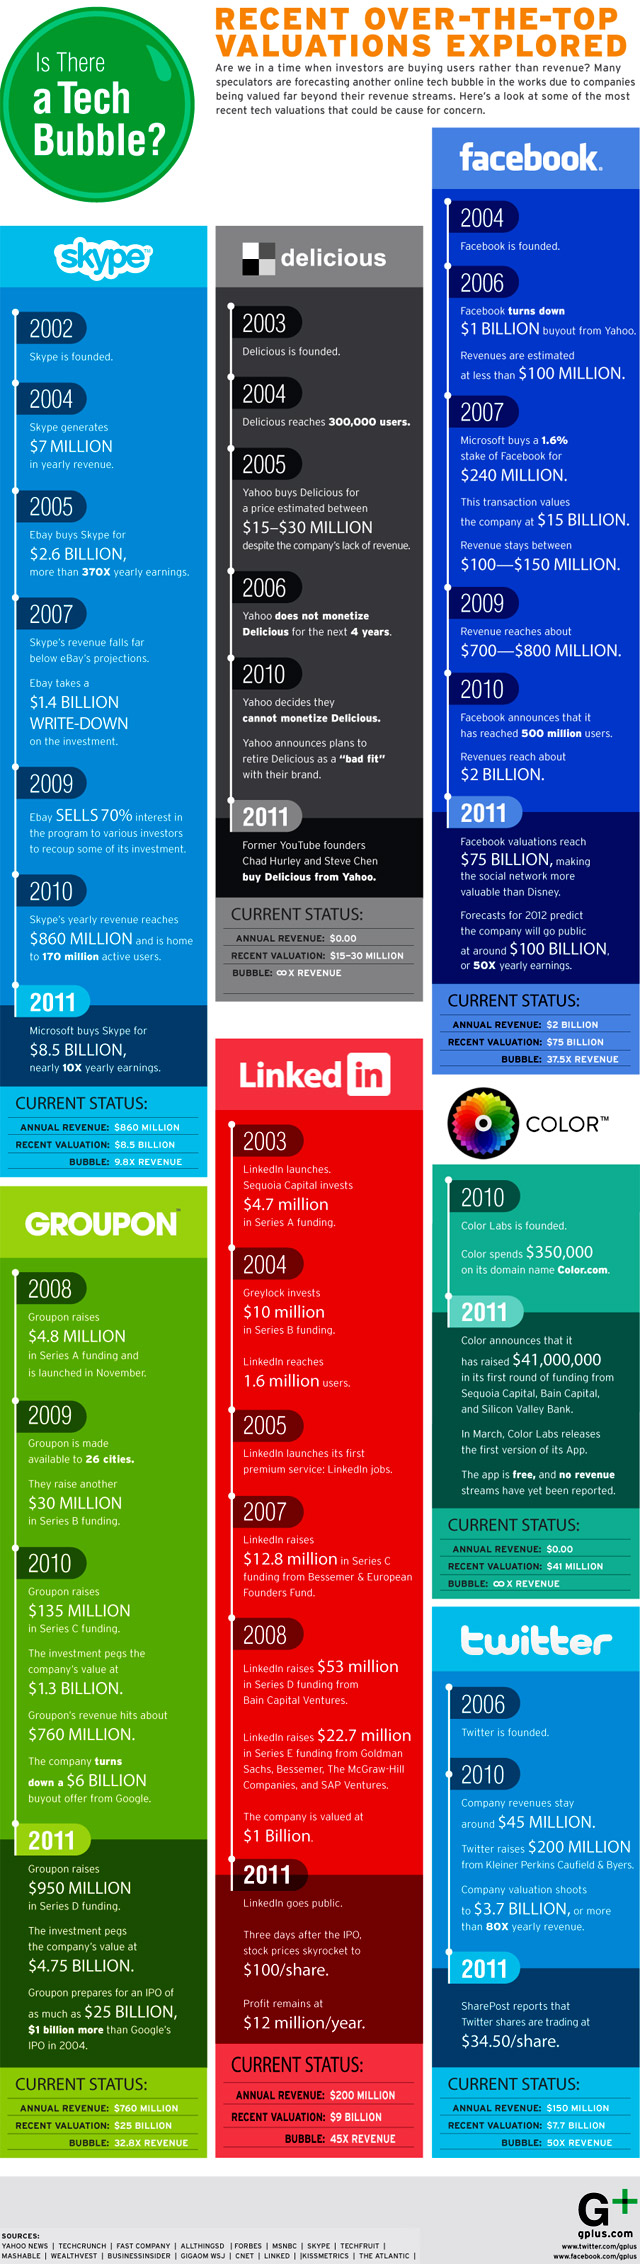 Social Media Tech Bubble Infographic